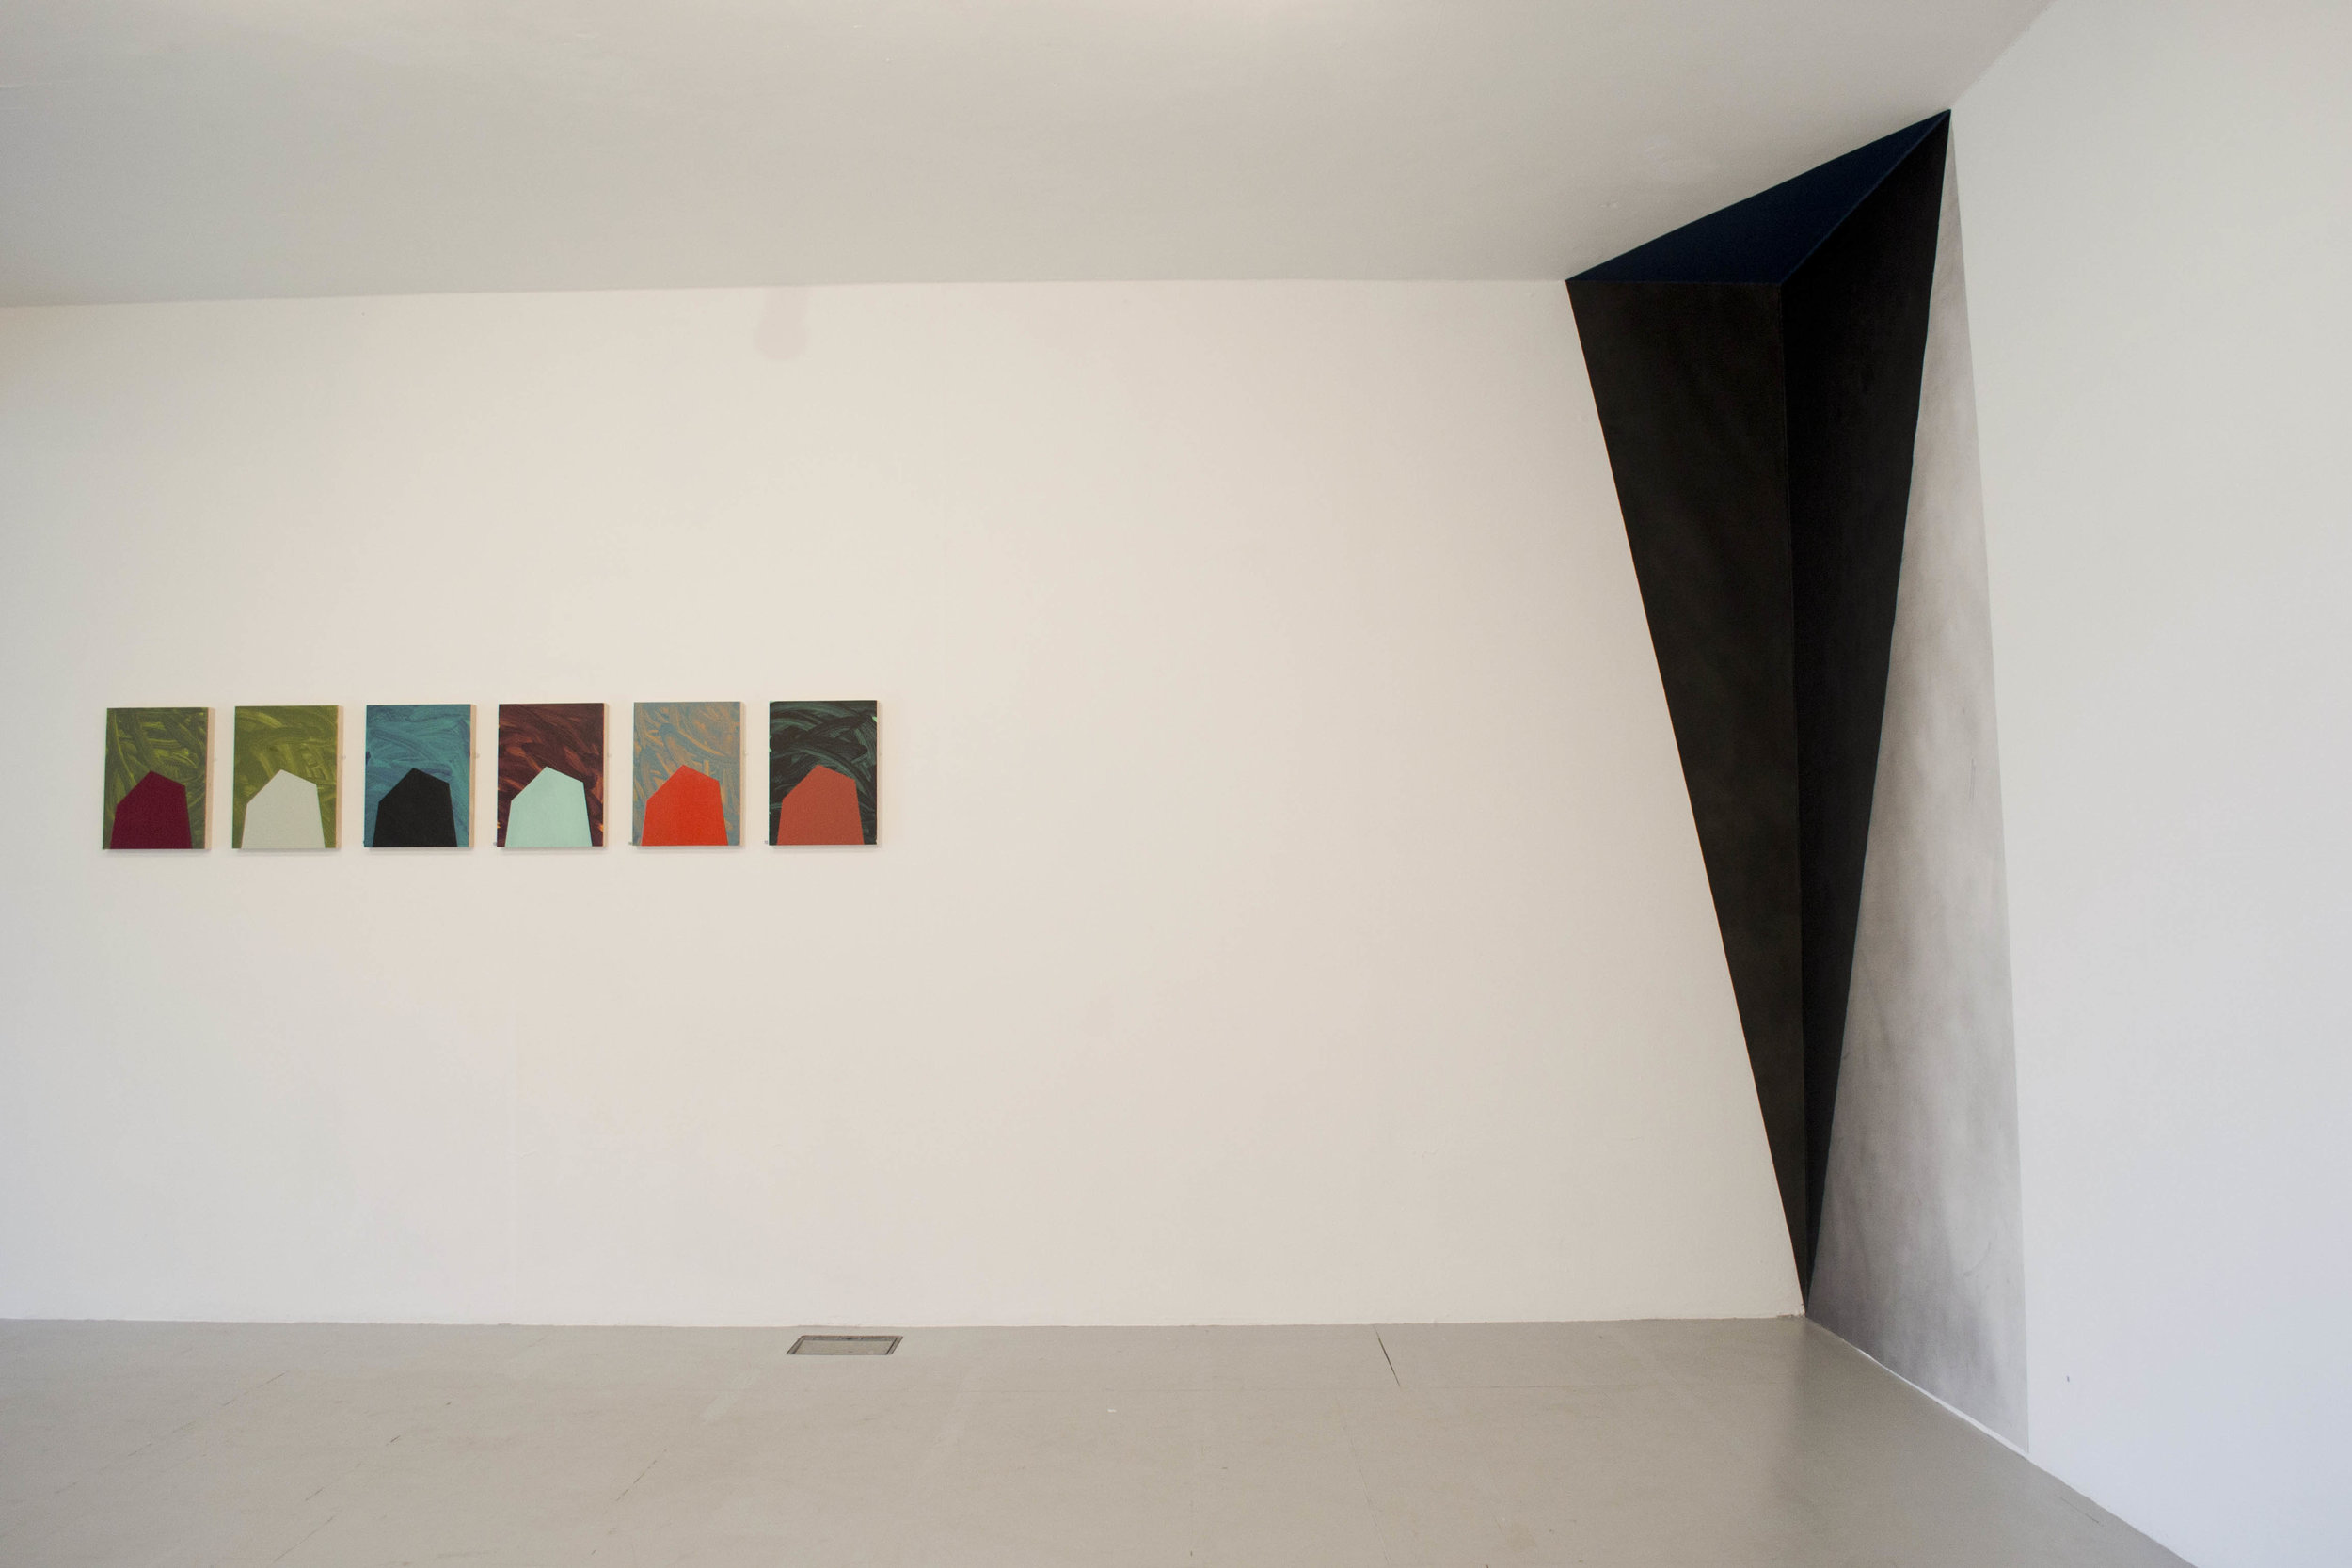 Floor to Ceiling Patrick O'Donnell and Tower series Johanna Melvin in situ Hardpainting.jpg